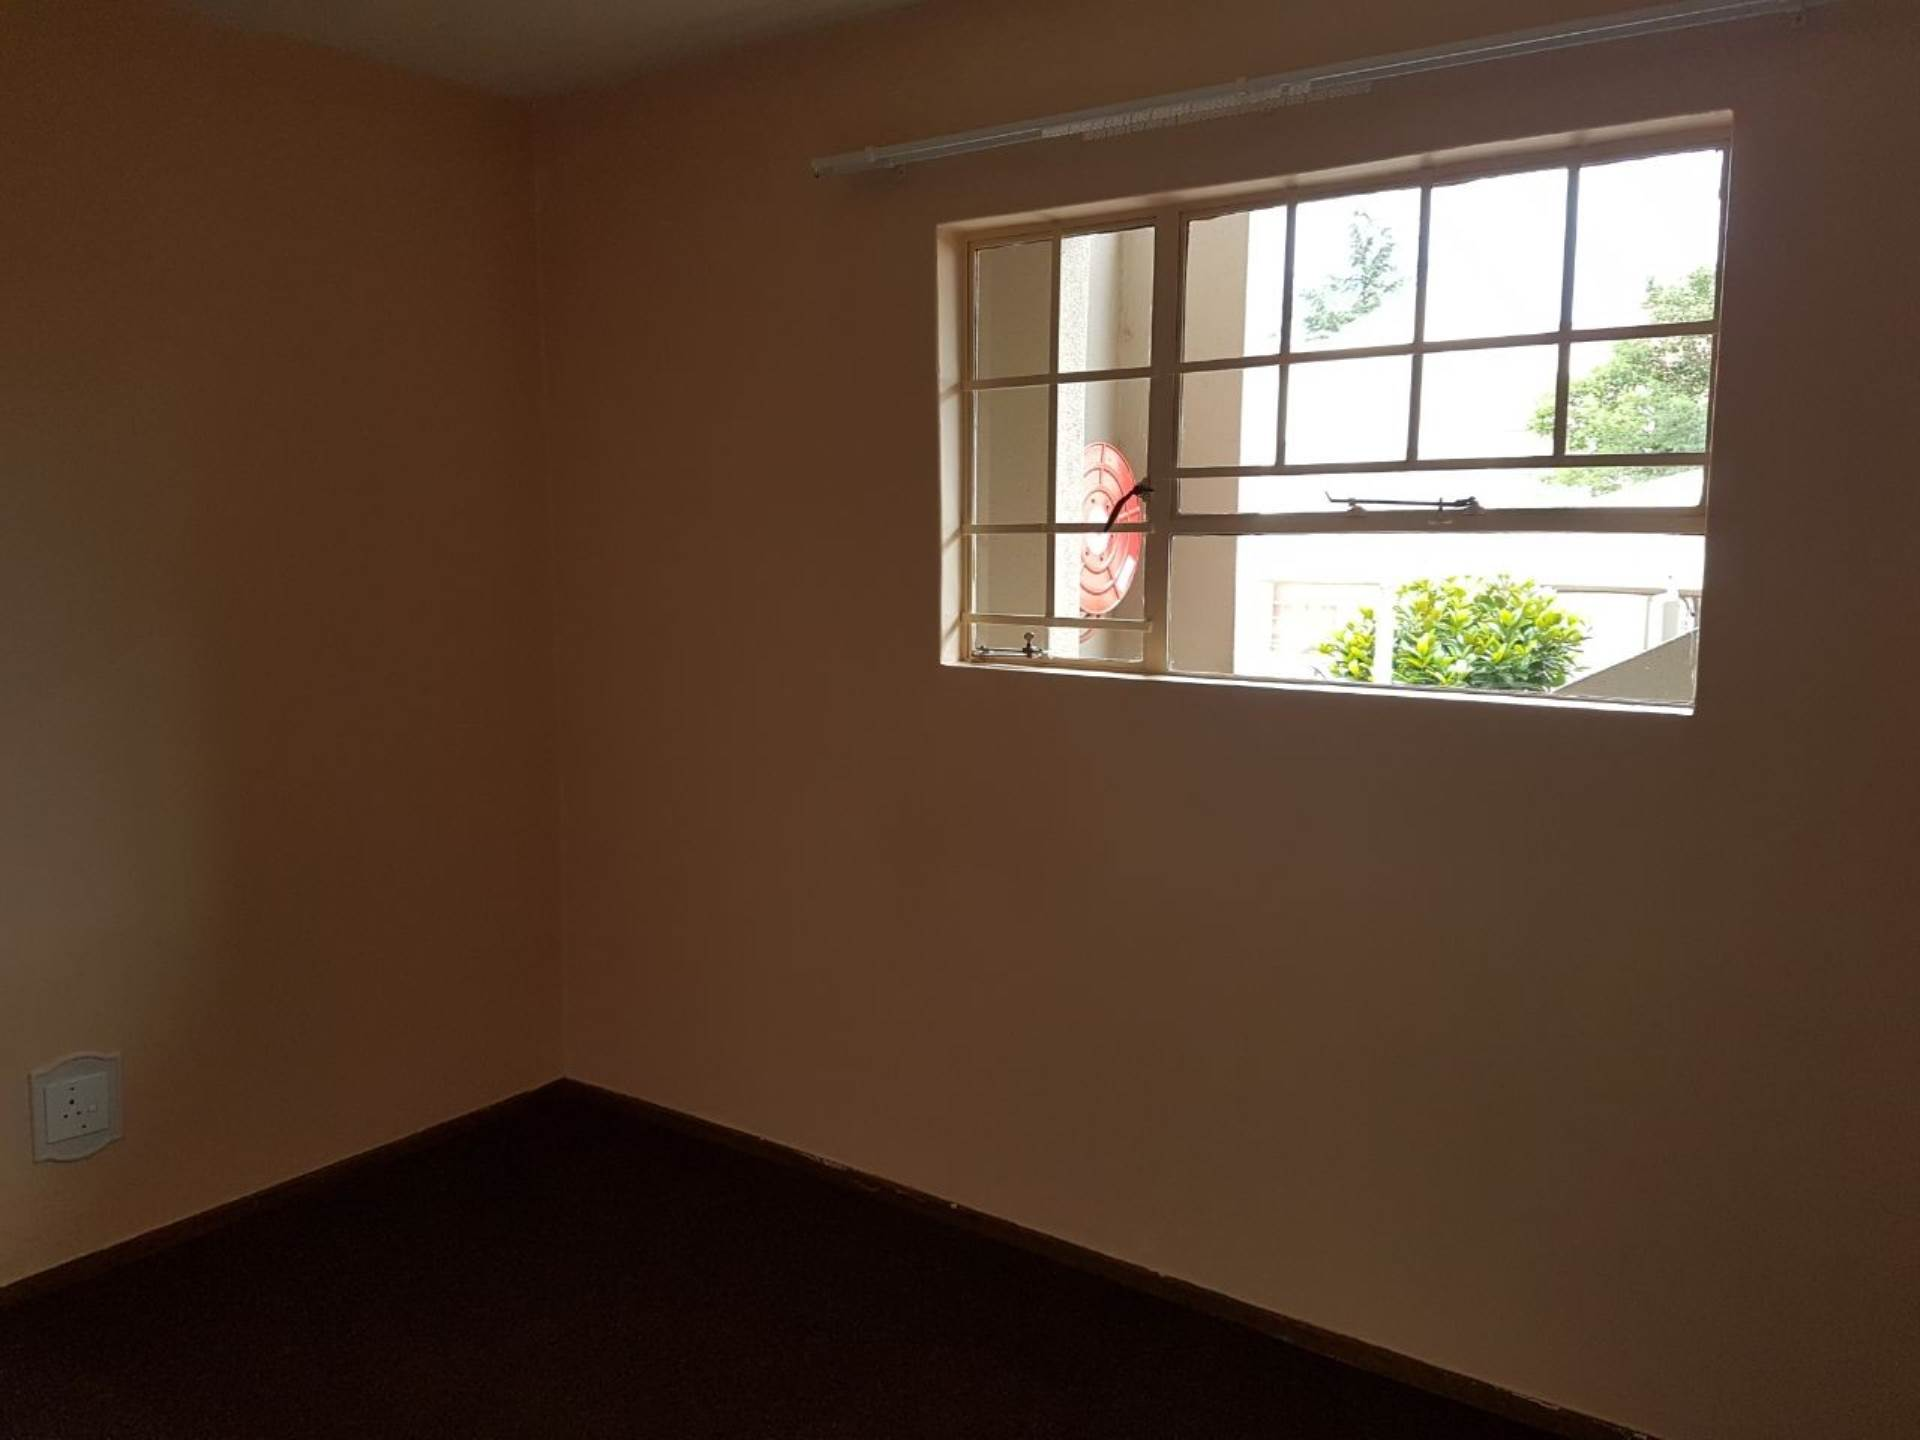 Centurion Central property for sale. Ref No: 13586674. Picture no 9